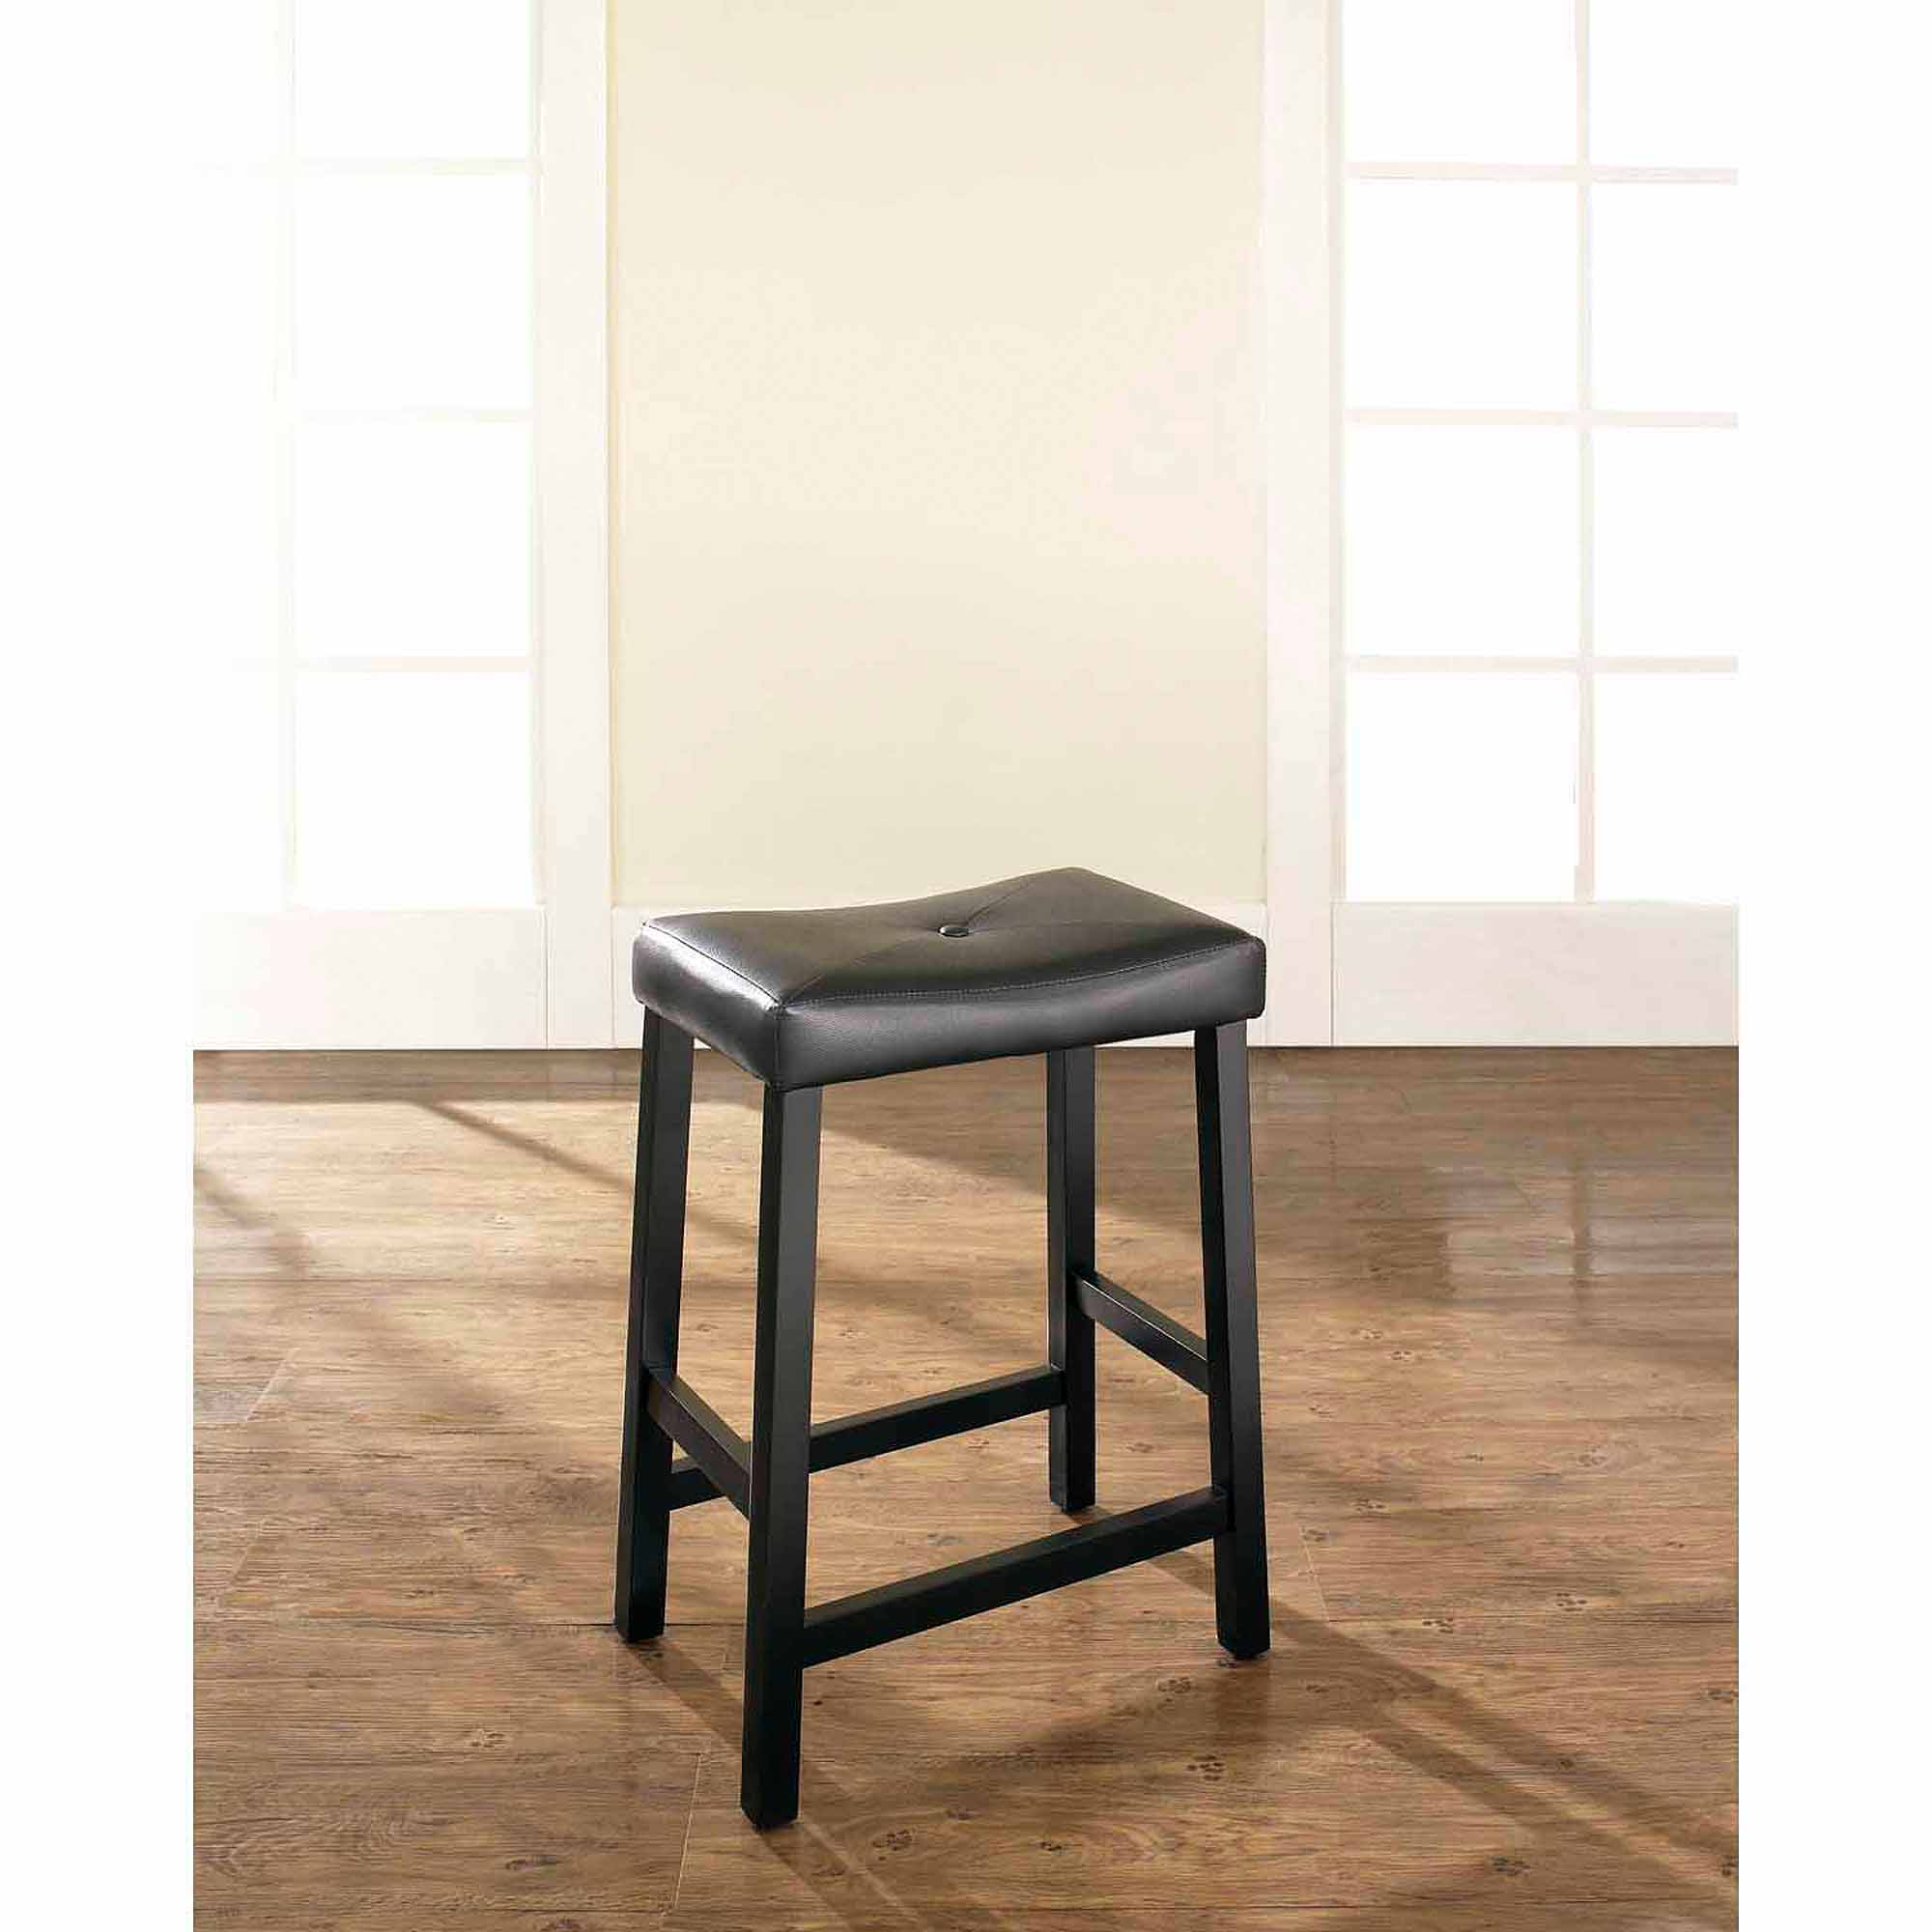 a world grey for kitchen great hayden barstool stools pin stool market bar upholstered